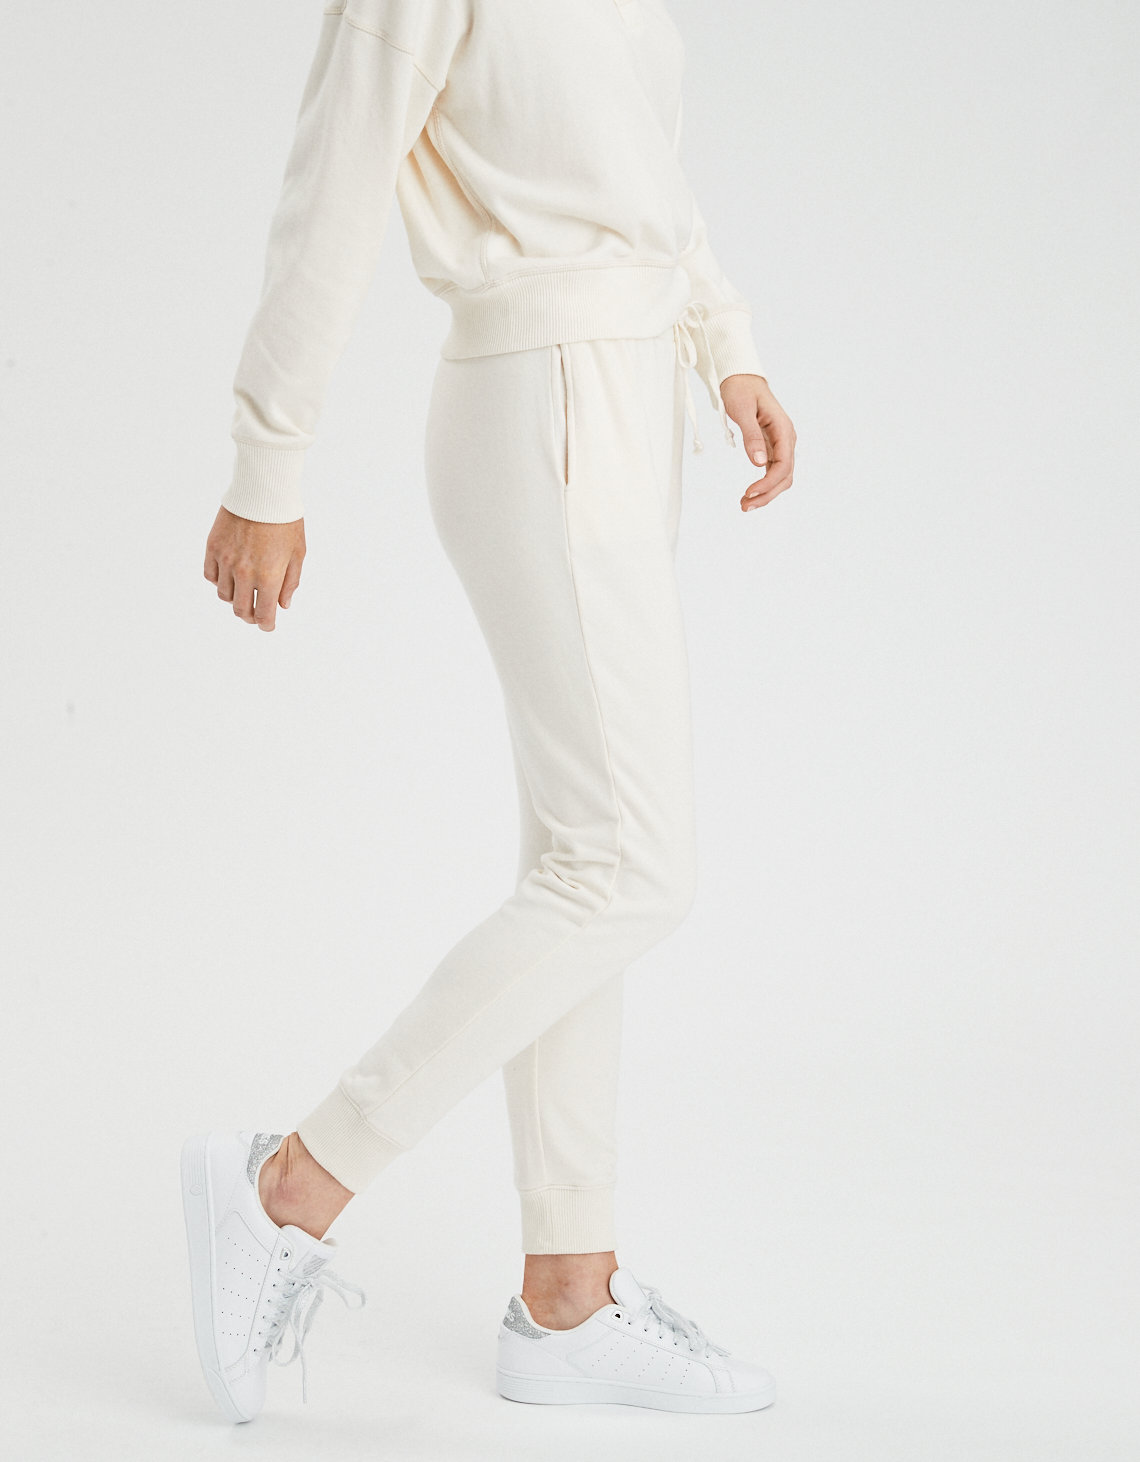 so cute + comfy! The cream color is also something different.